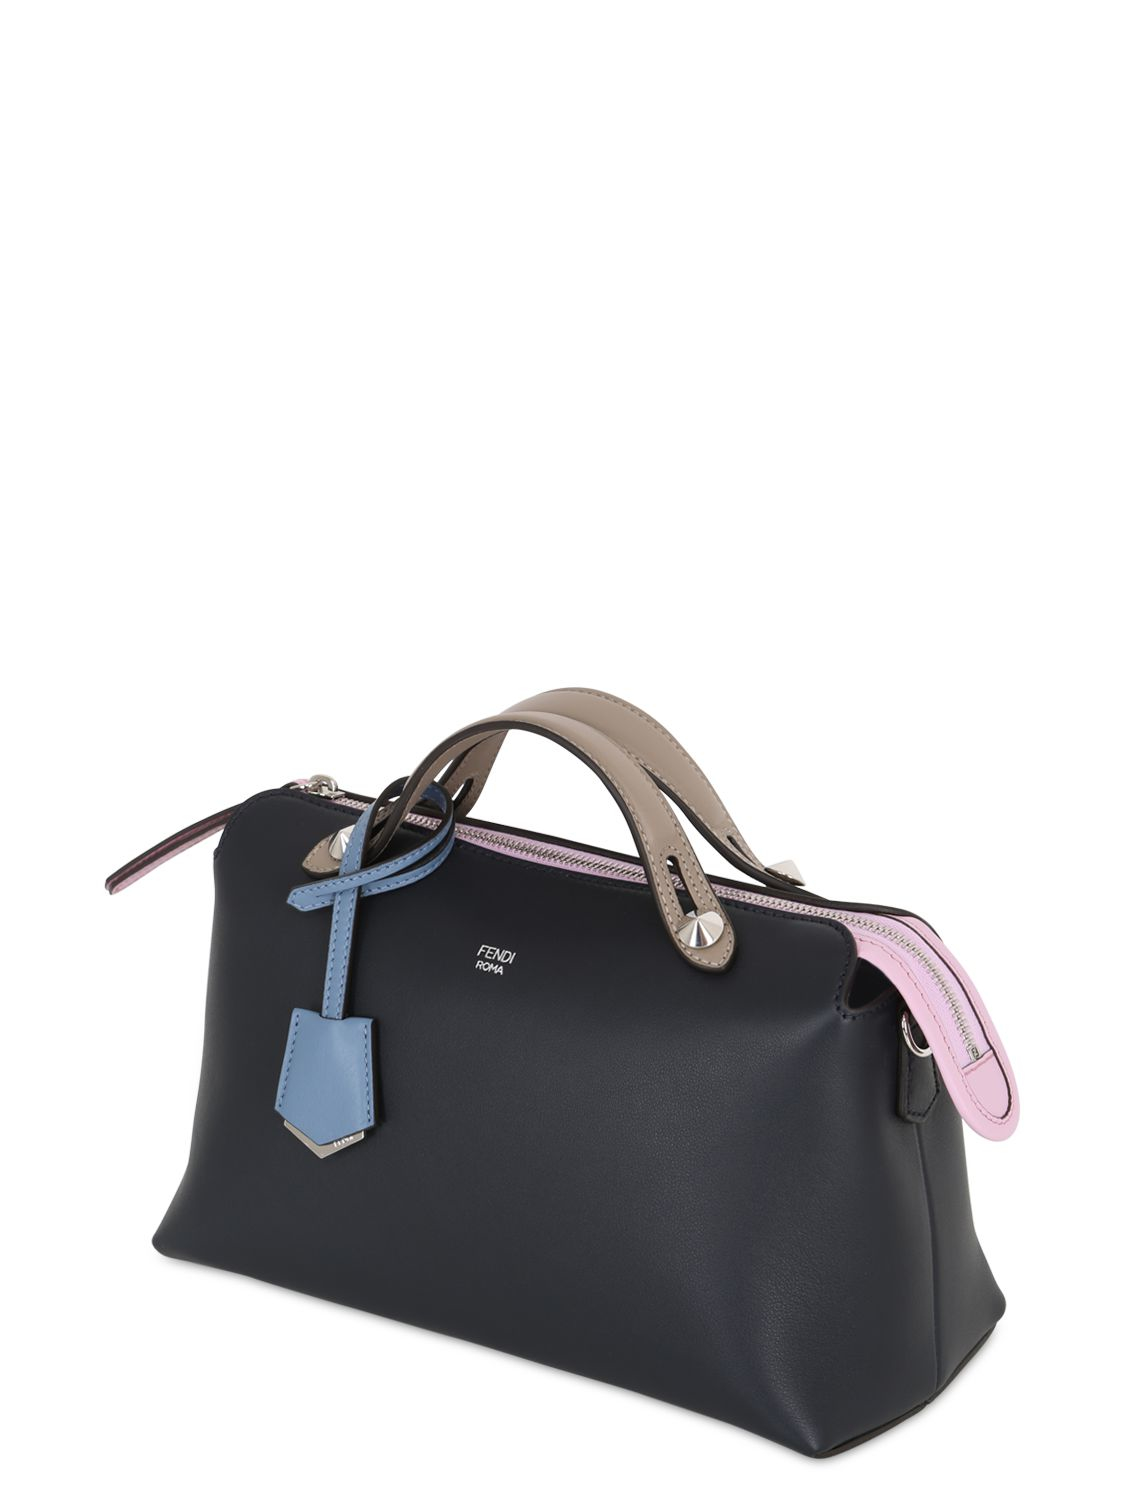 c93b1f95f0 Lyst - Fendi Small By The Way Leather Top Handle Bag in Blue